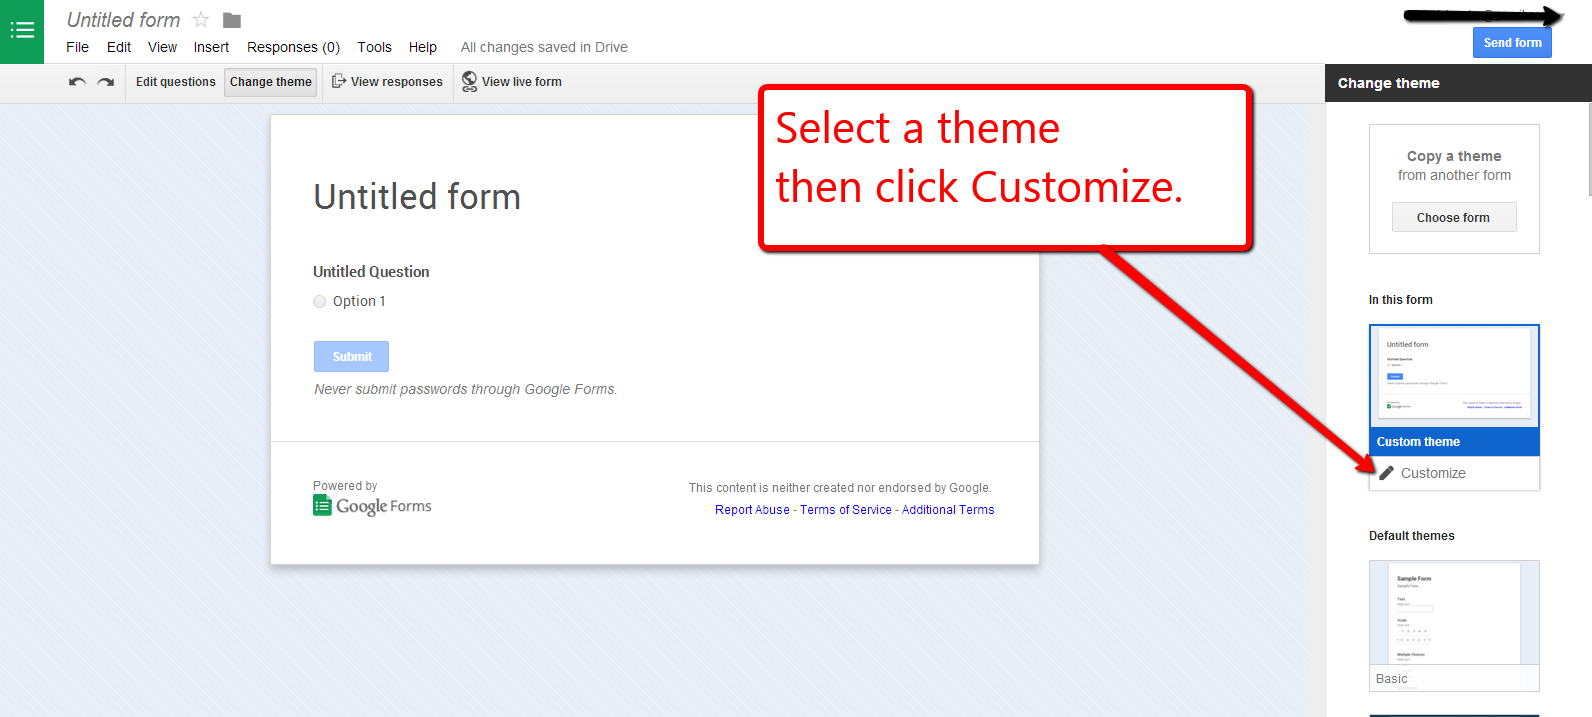 Google themes default - Click Image To View Full Size